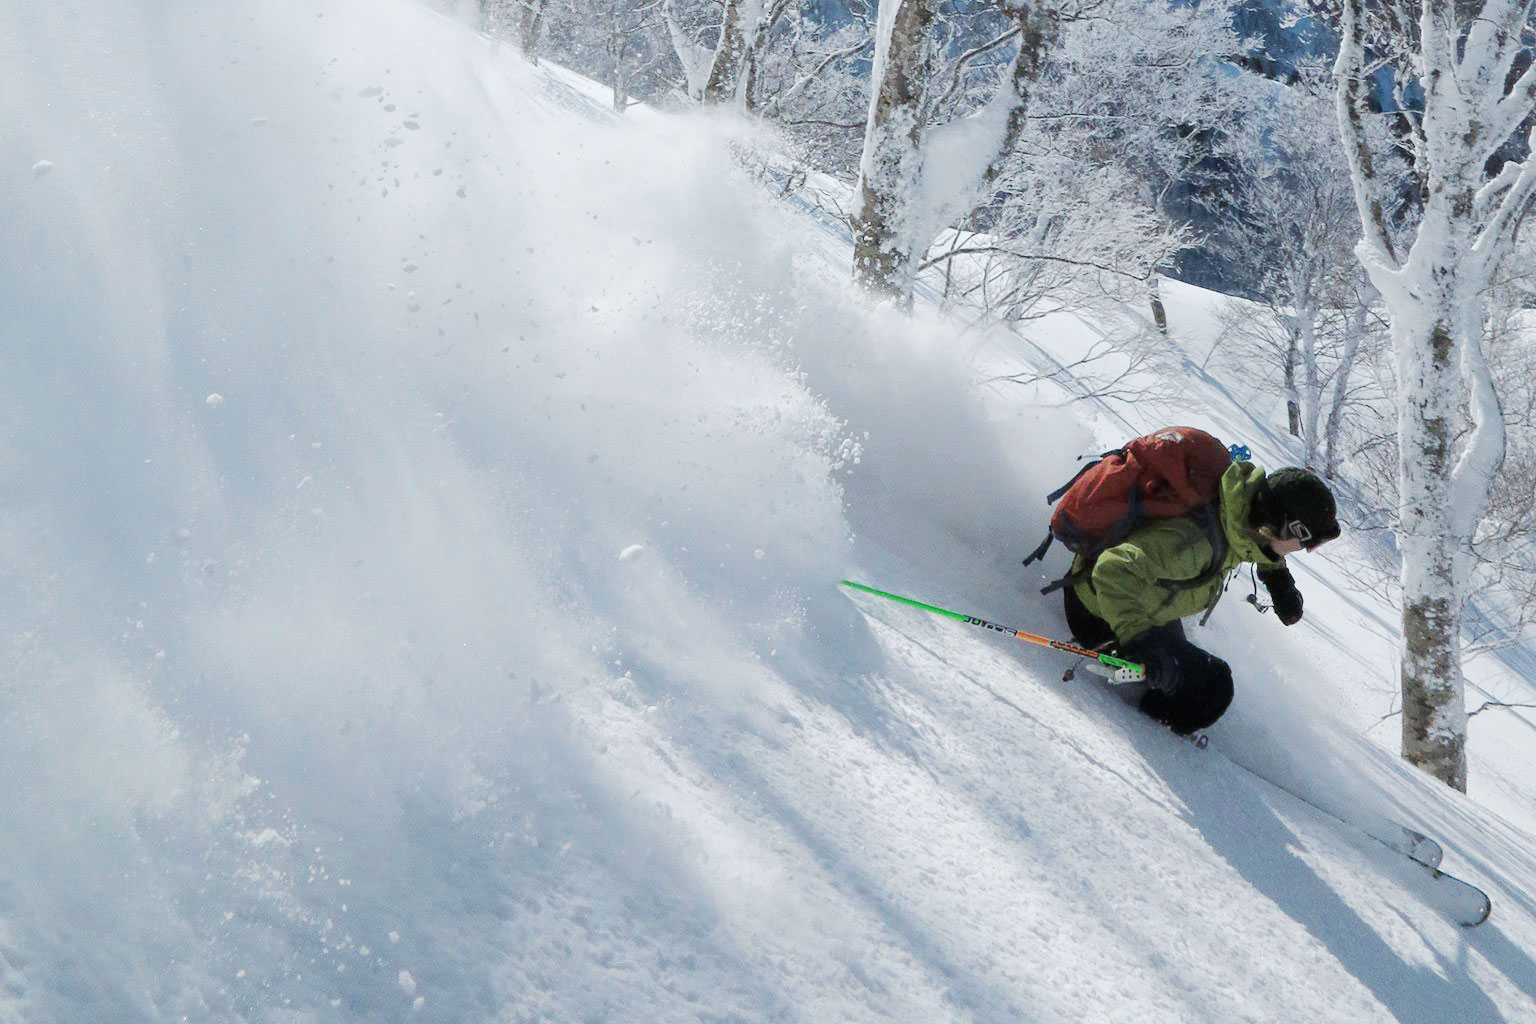 Nozawa backcountry tour